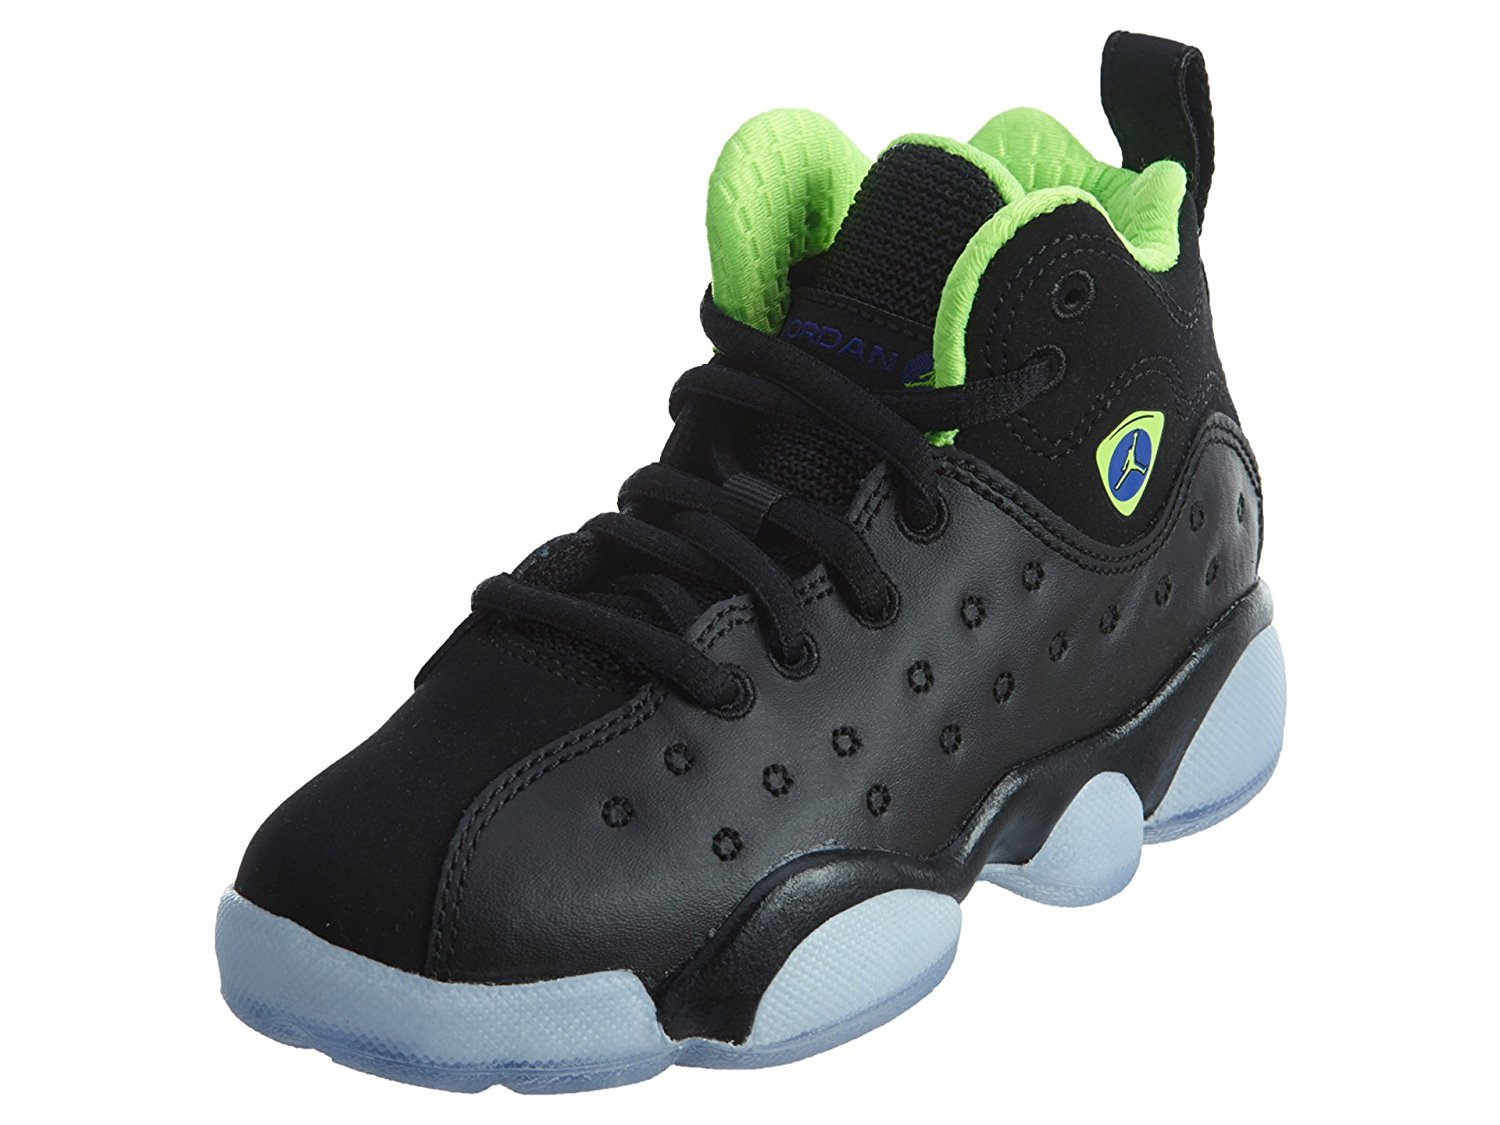 9c78aa90dbb8f2 Jordan Jumpman Team II Premium Black Electric Green-Concord (Little Kid)